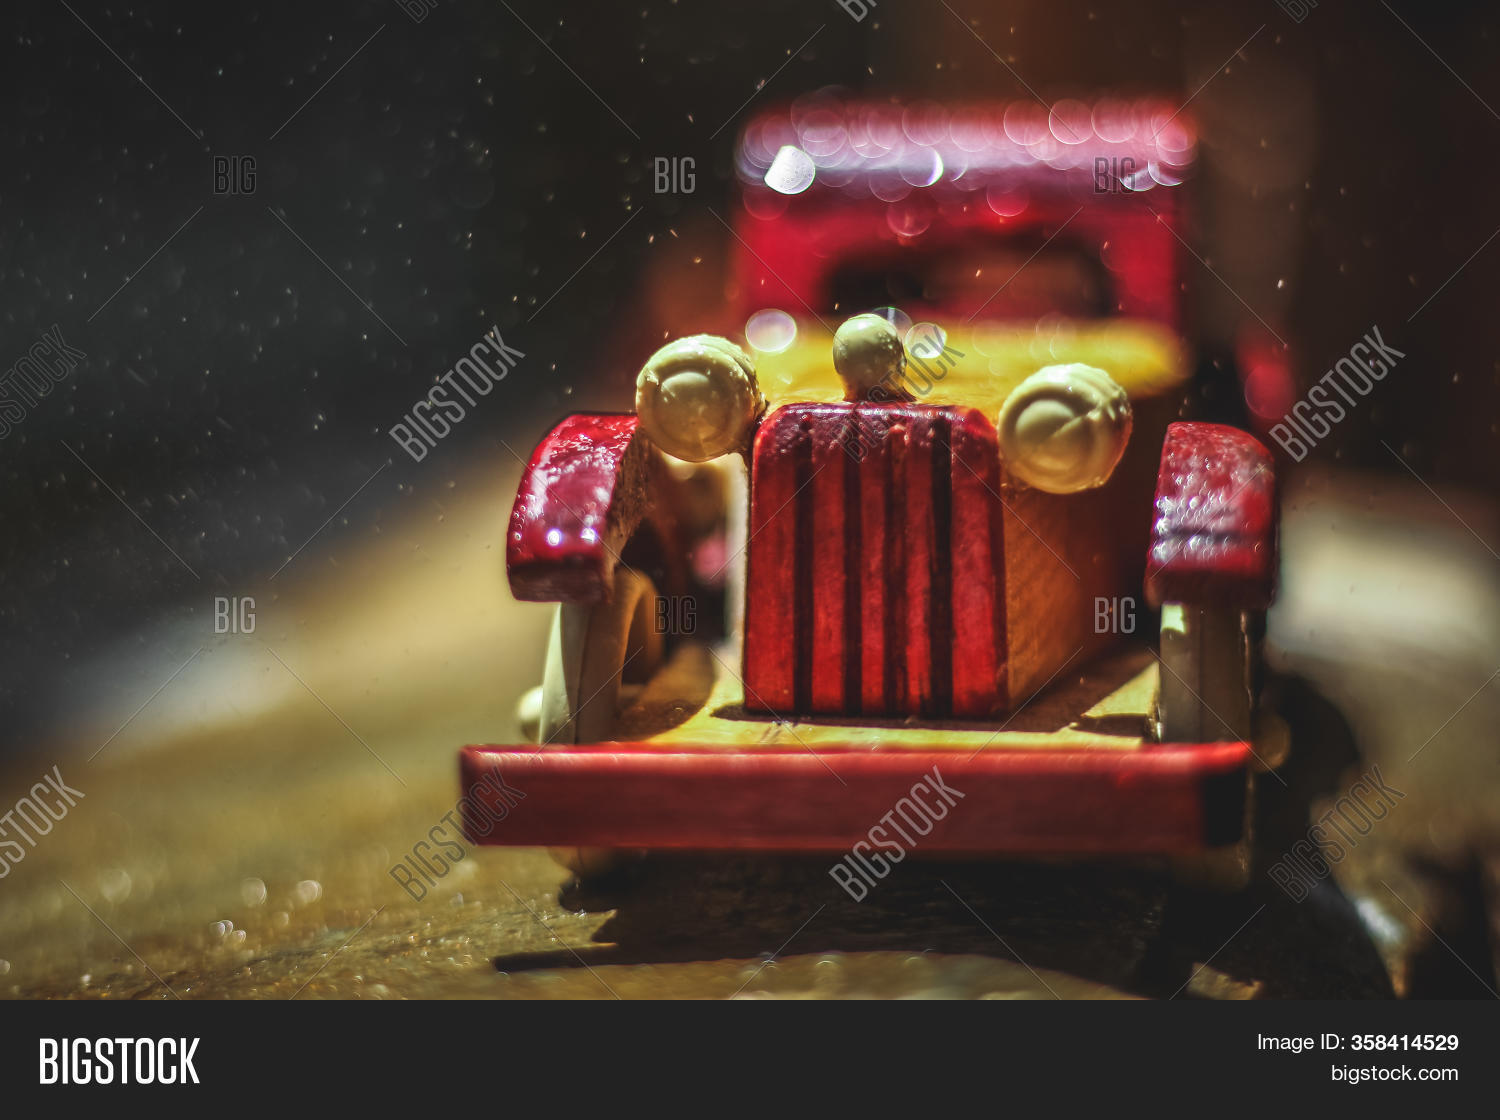 Vintage Toy Car Under The Rain On The Road. Miniature Car Toy In Rain. Red And Yellow Vintage Car On